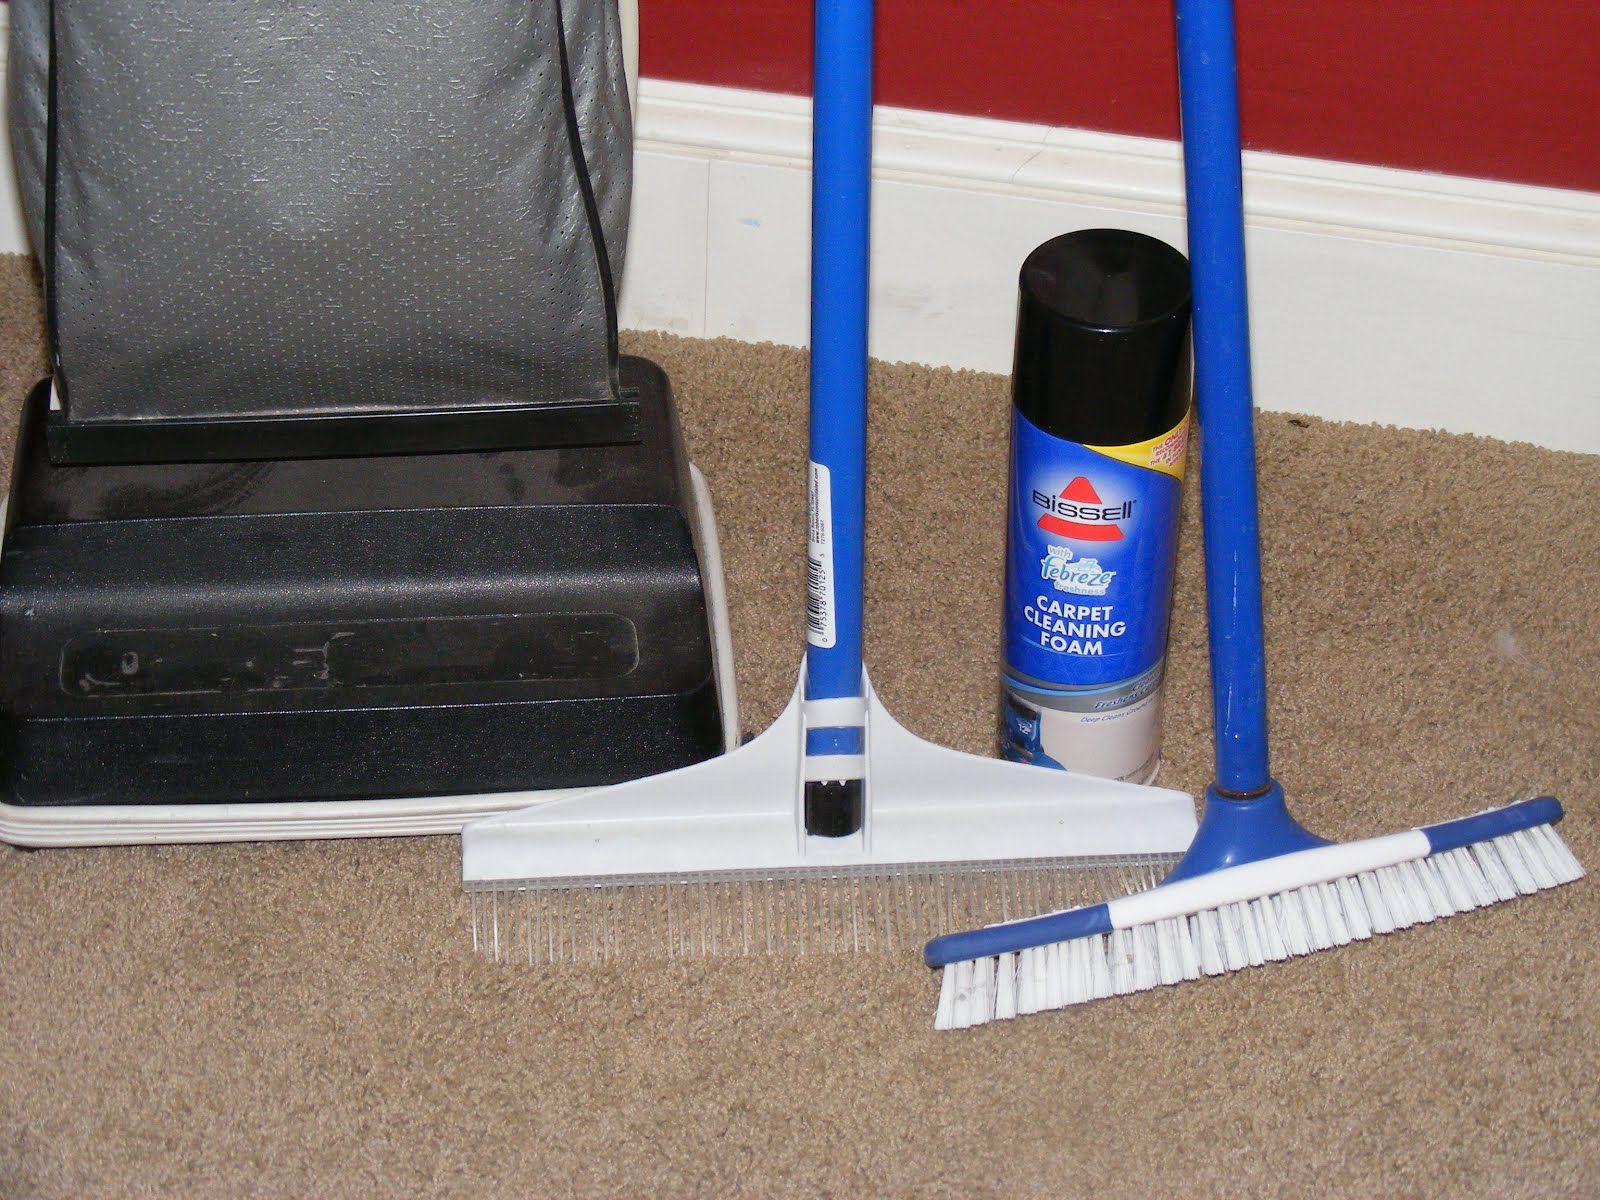 How To Clean Carpet Without A Steam Cleaner Machine Carpet Cleaning Hacks Diy Carpet Cleaner How To Clean Carpet